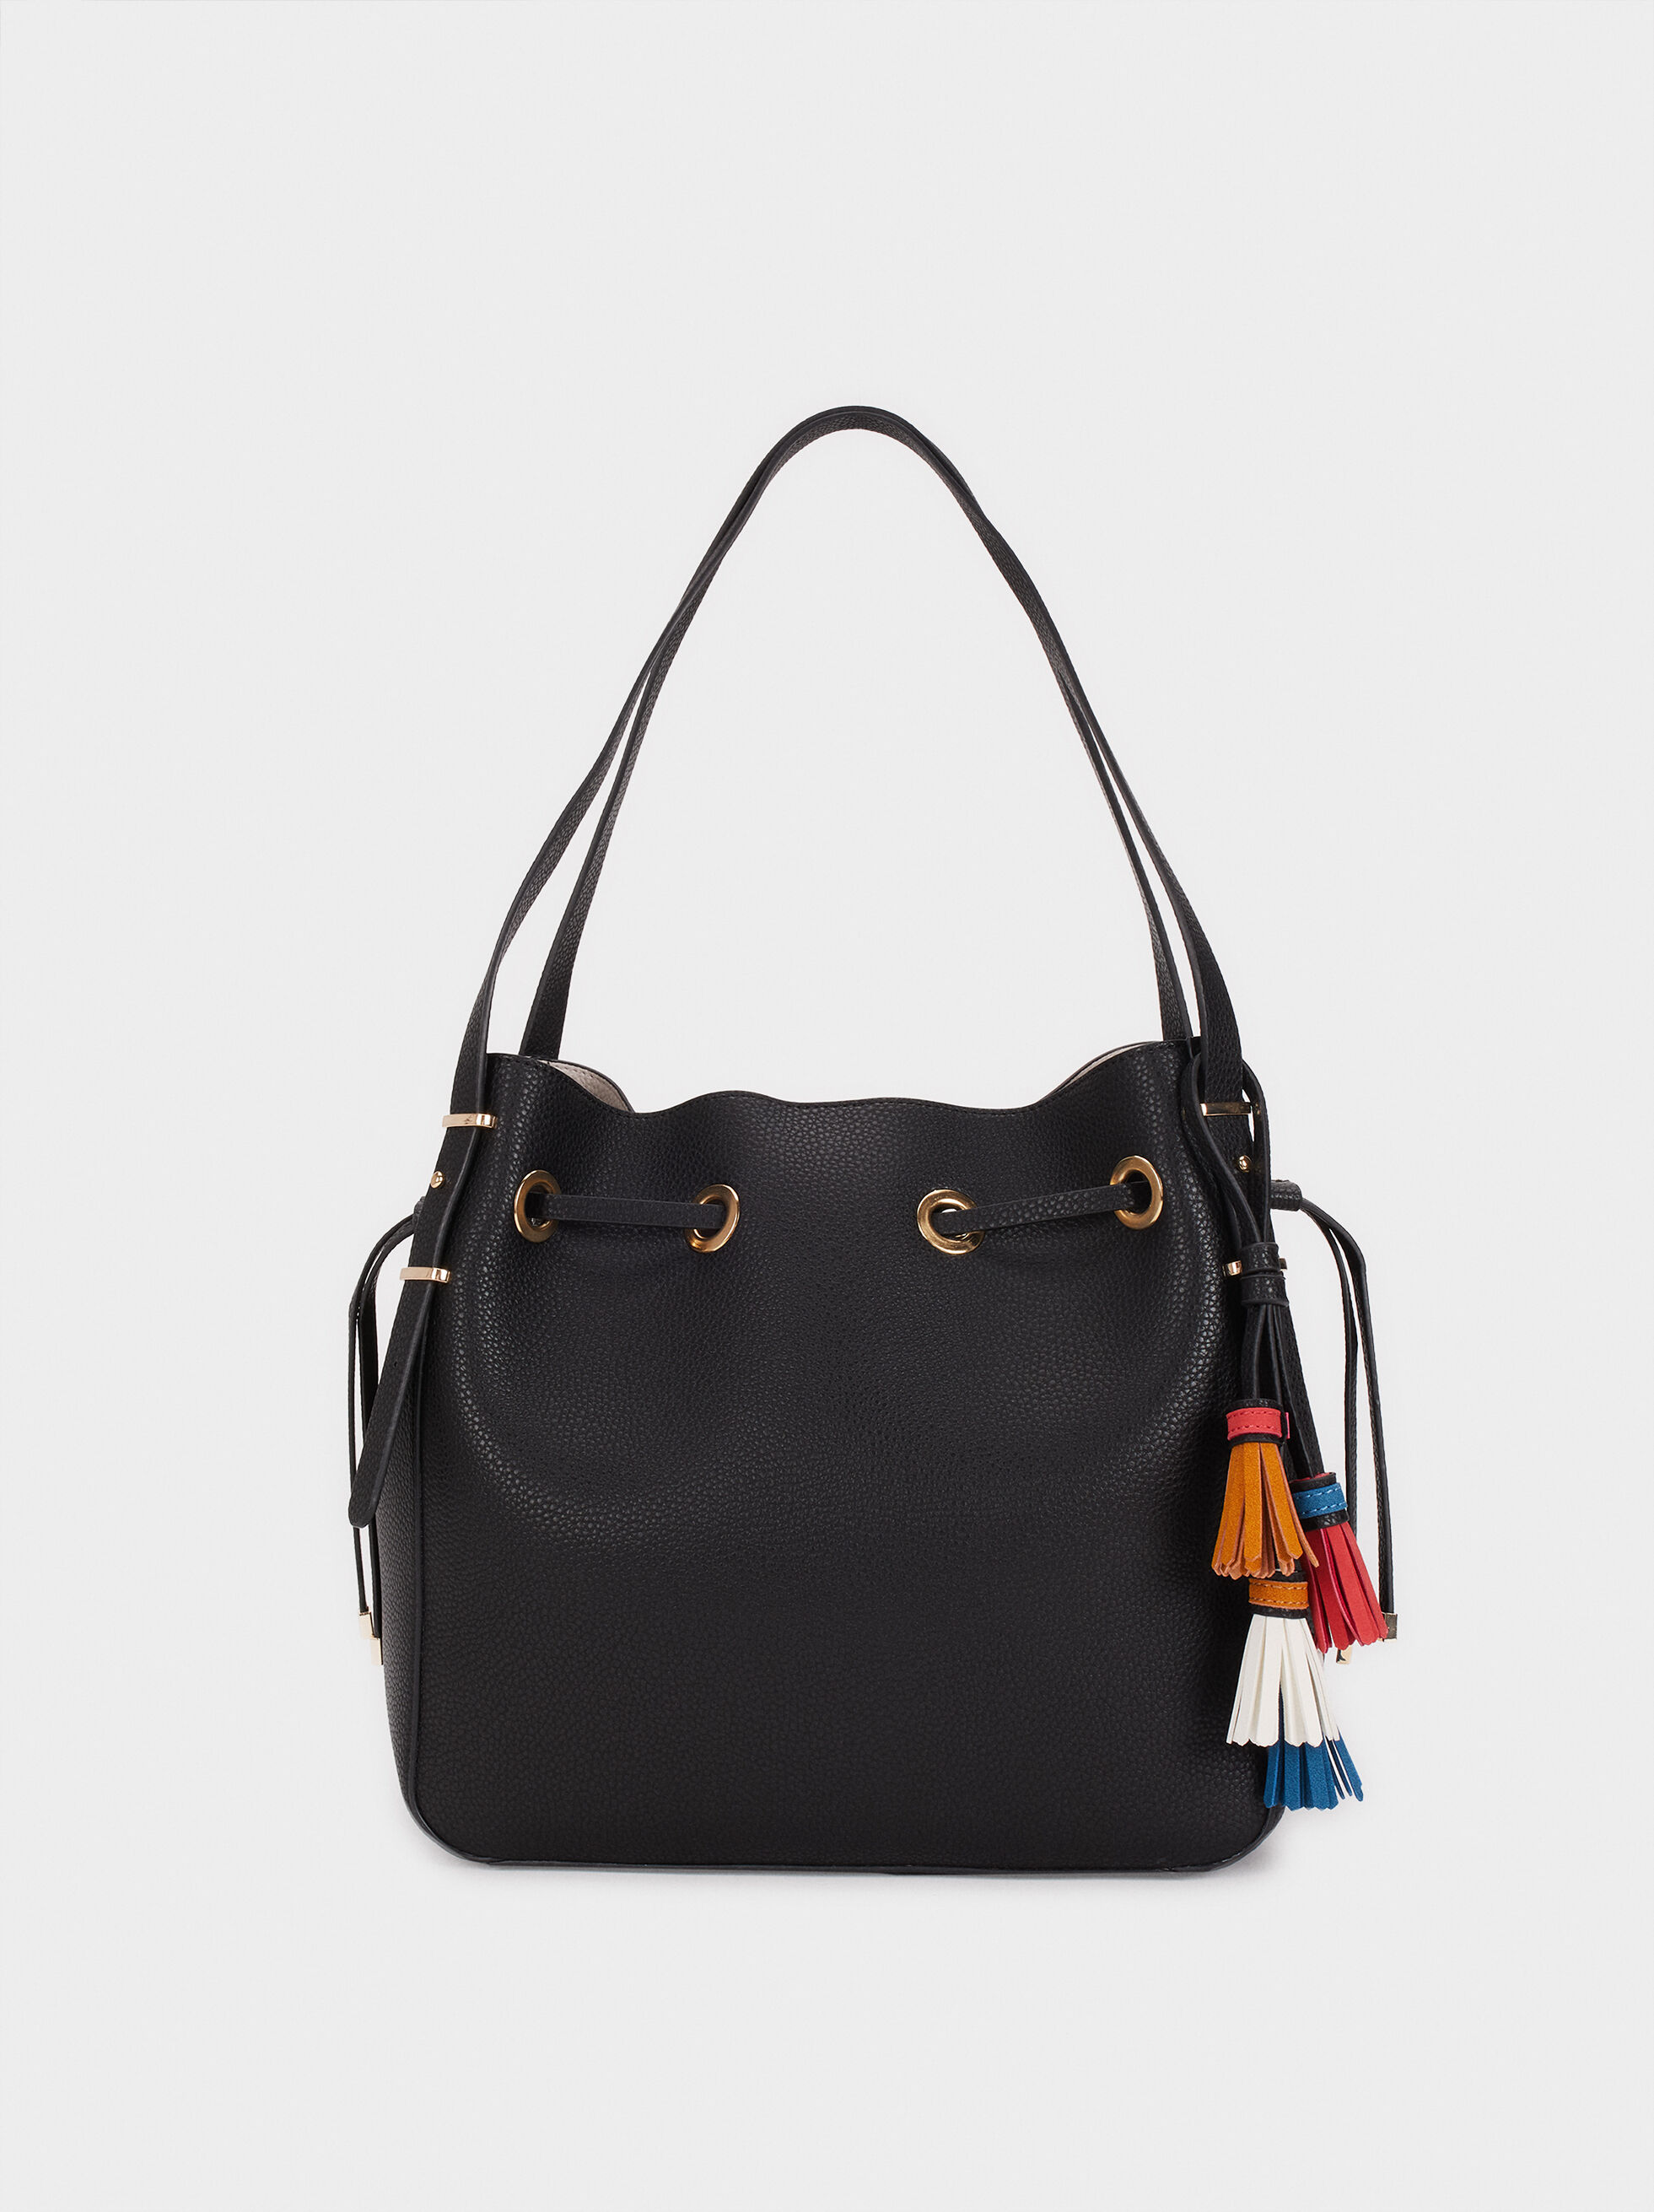 Handbag With Tassels, Black, hi-res